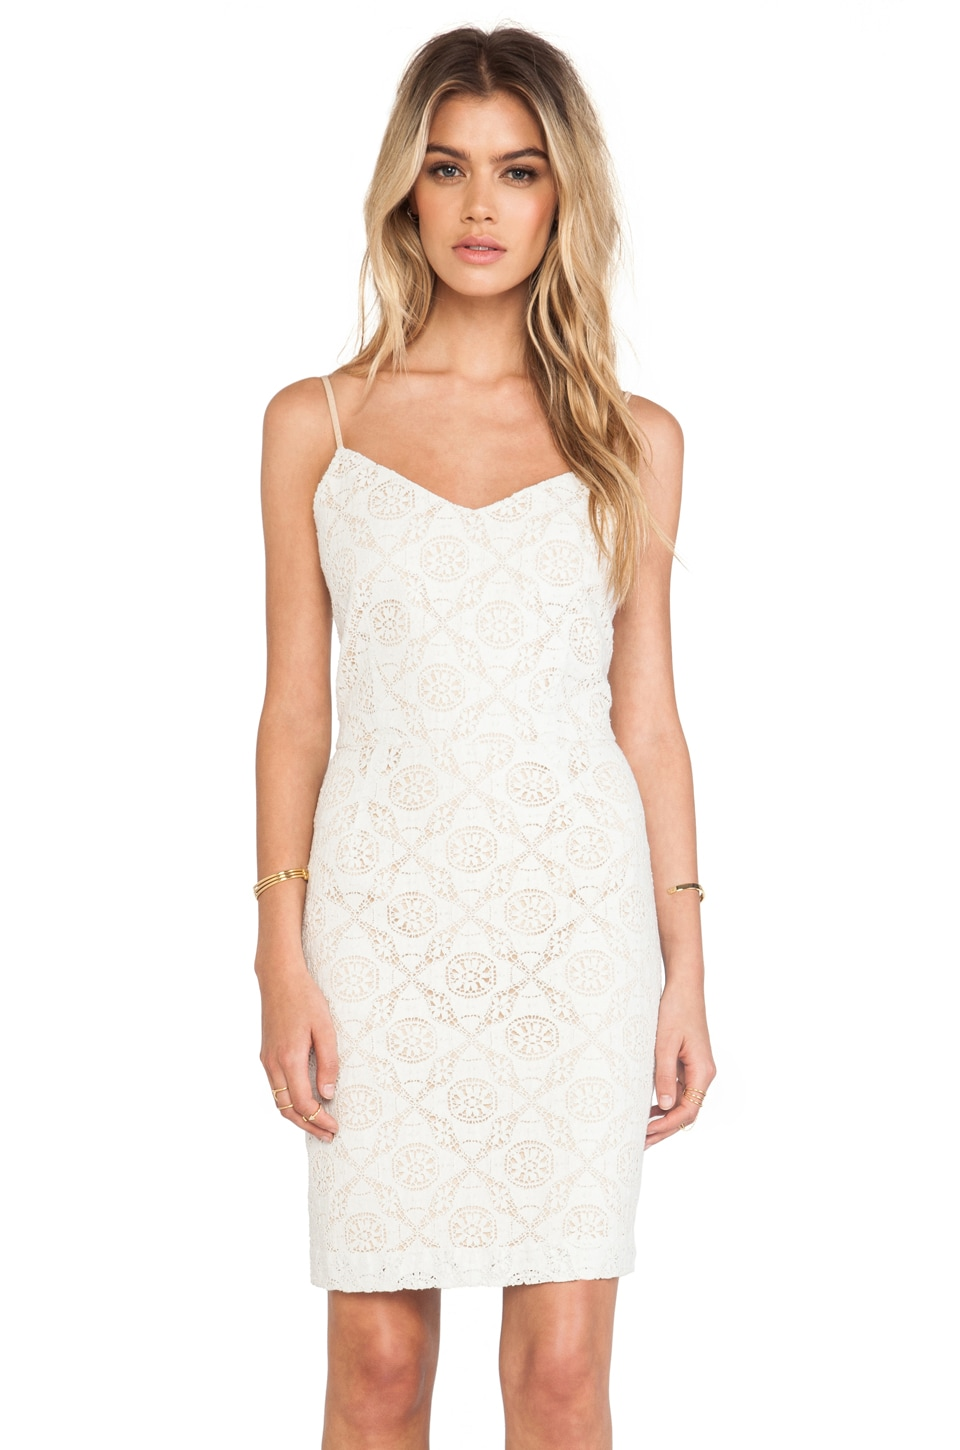 Joie Orchard B Crocheted Dress in Off White